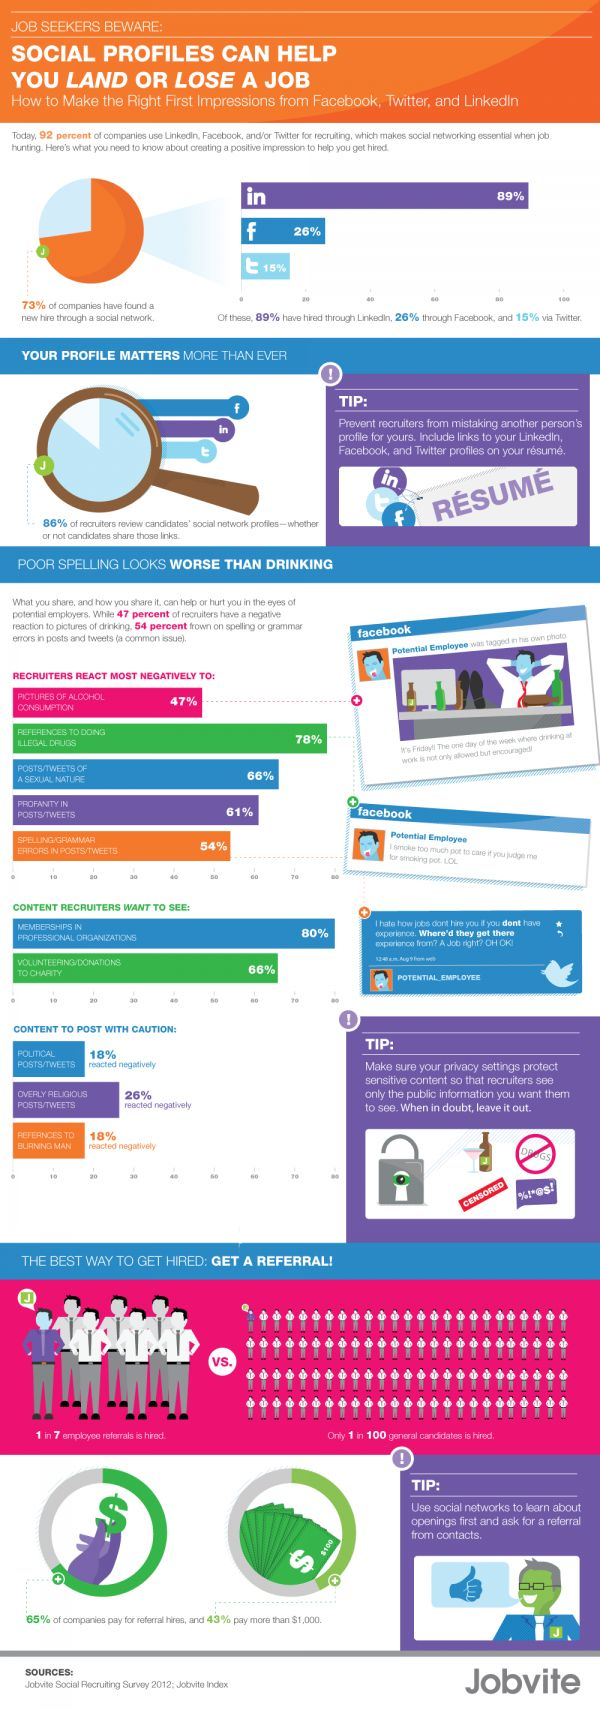 best images about linkedin twitter and facebook social impressing employers social media profiles